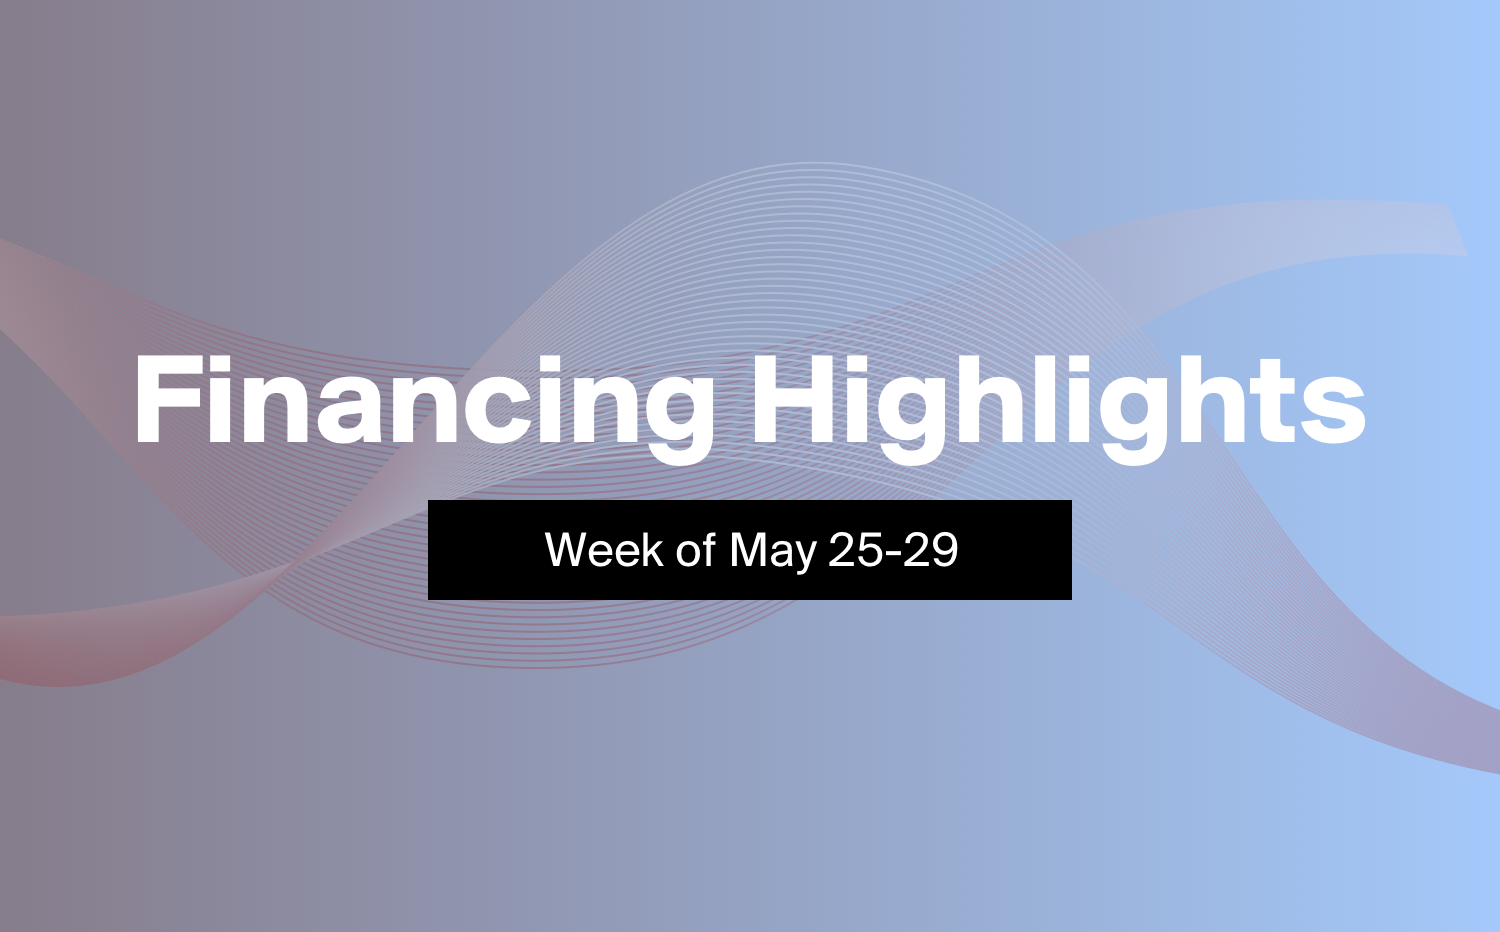 3 Financings You Need to Know About This Week (May 25-29)